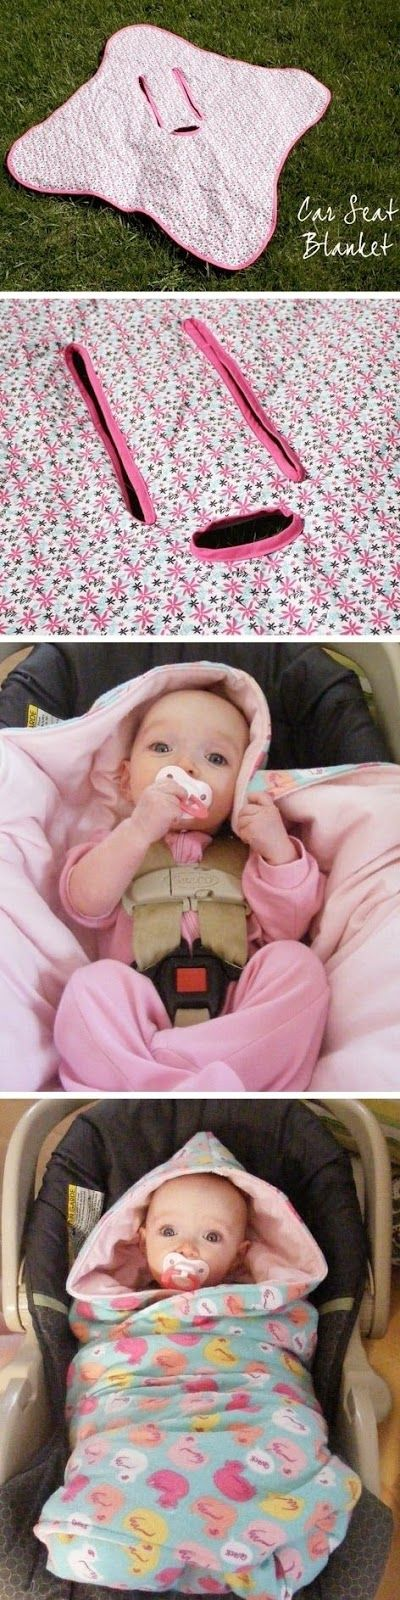 Car Seat Swaddle Blanket  #DIY #howTo #baby #babies #blanket #carSeat